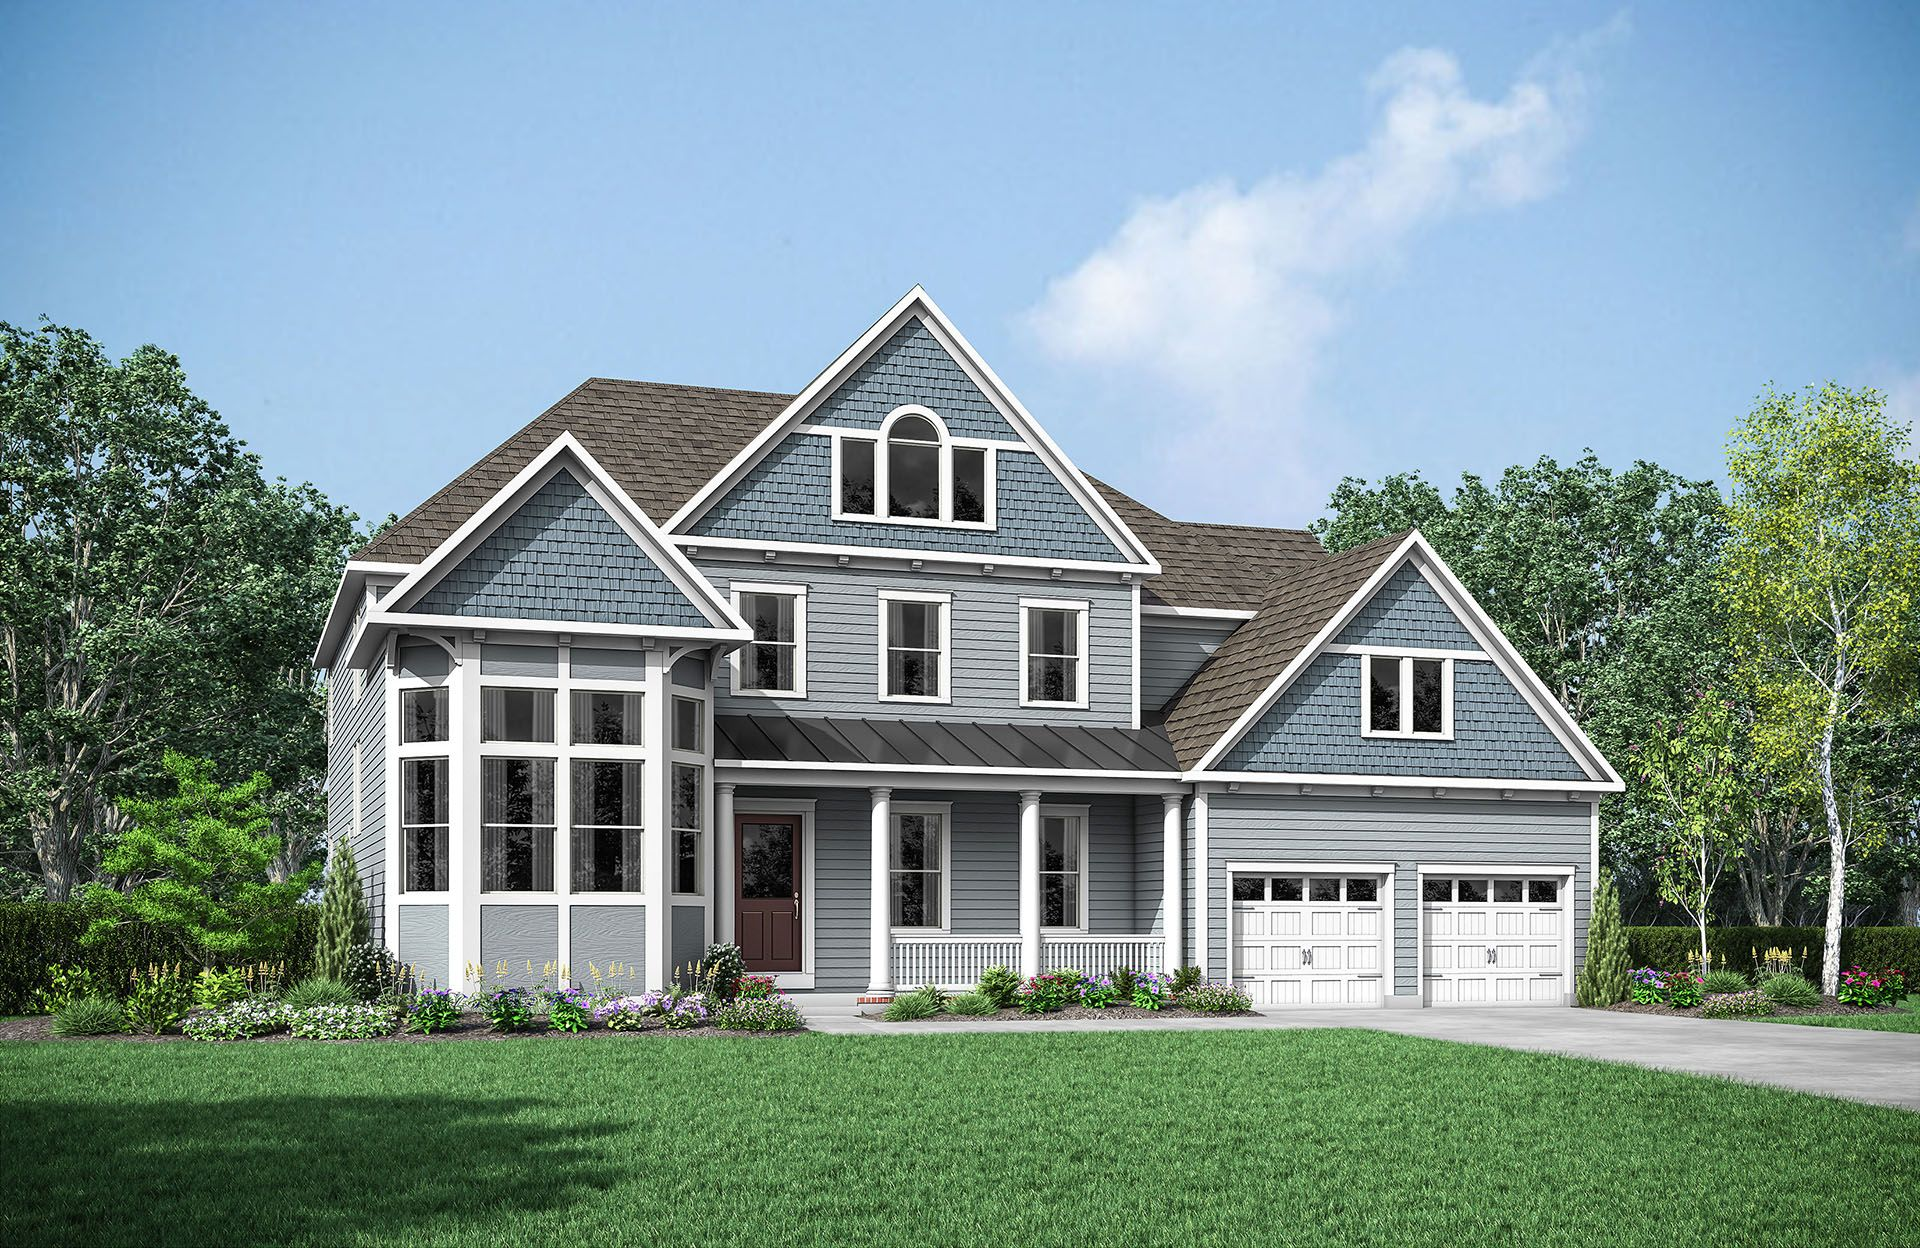 Single Family for Active at Sudley Farm - Great Falls Doubleday Road Centreville, Virginia 20120 United States